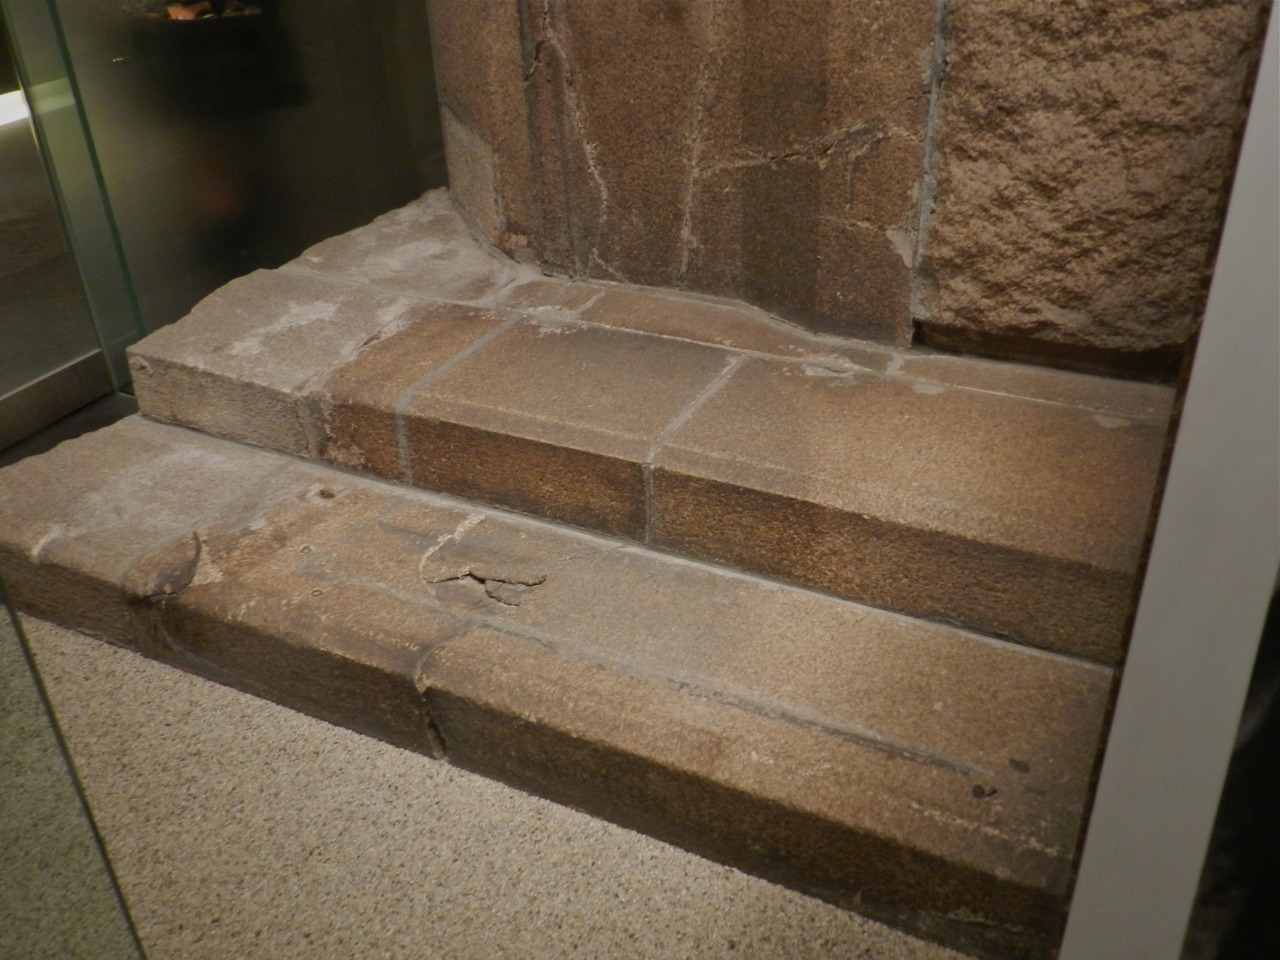 Shadow of someone sitting on a stair. Seconds after A-bomb exploded many Japanese vaporized and left only a shadow. Hiroshima Museum